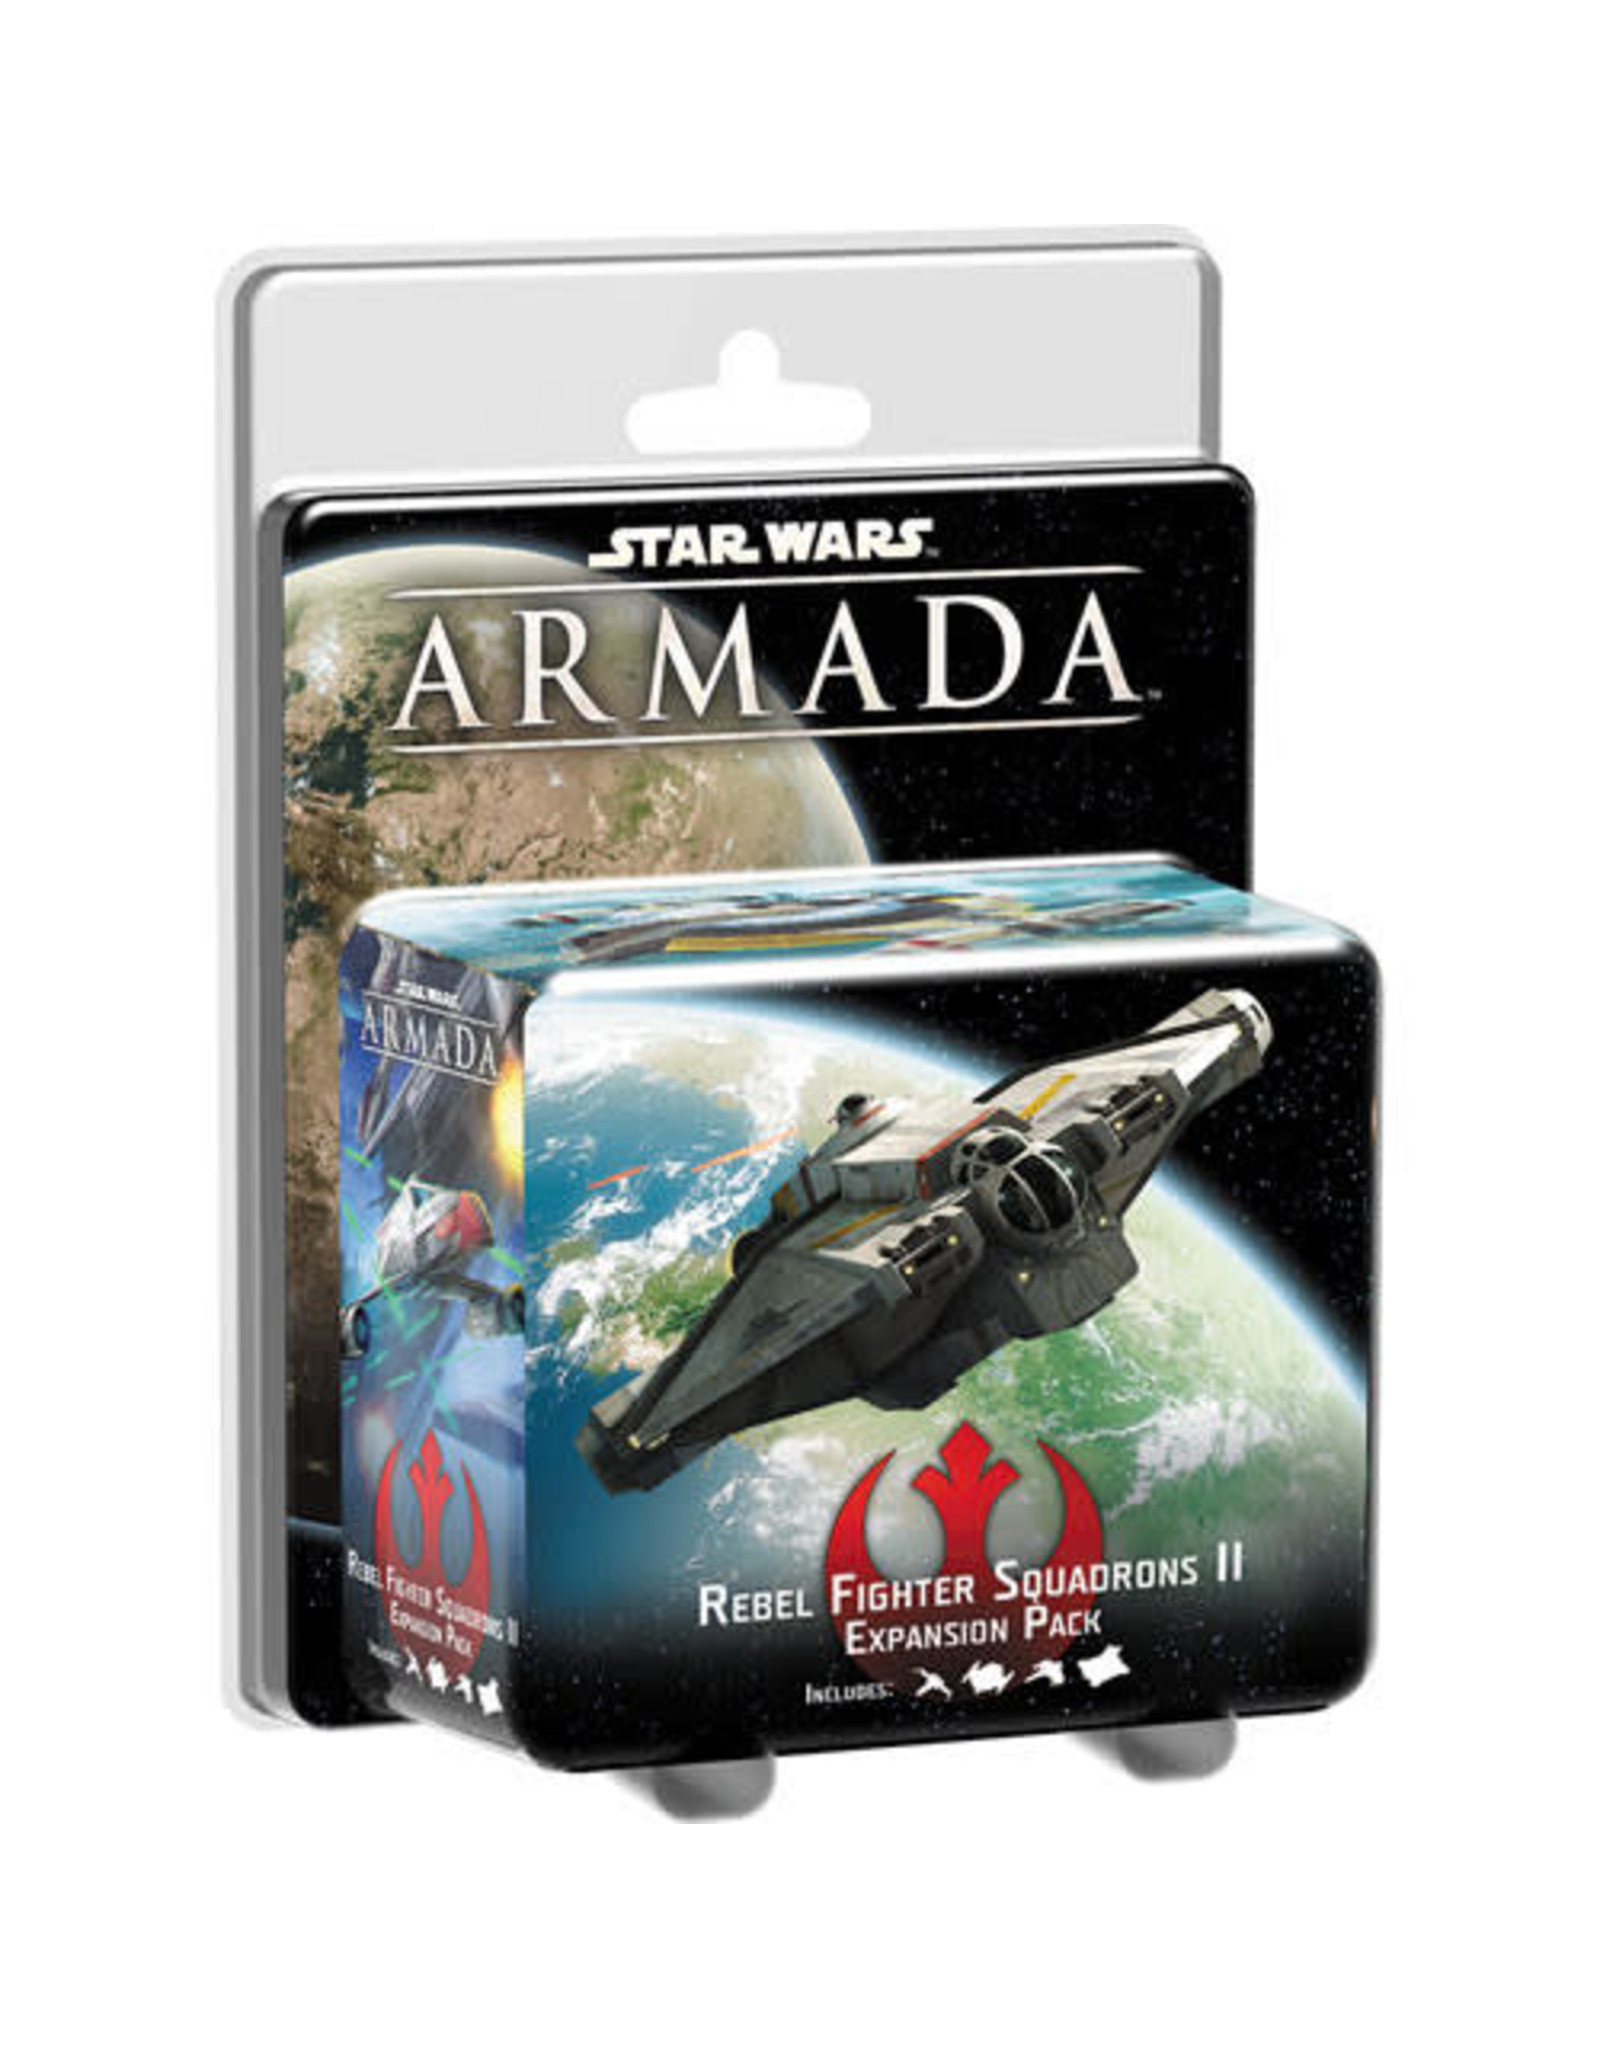 Fantasy Flight Games Copy of Star Wars Armada: Rebel Fighter Squadrons II Expansion Pack